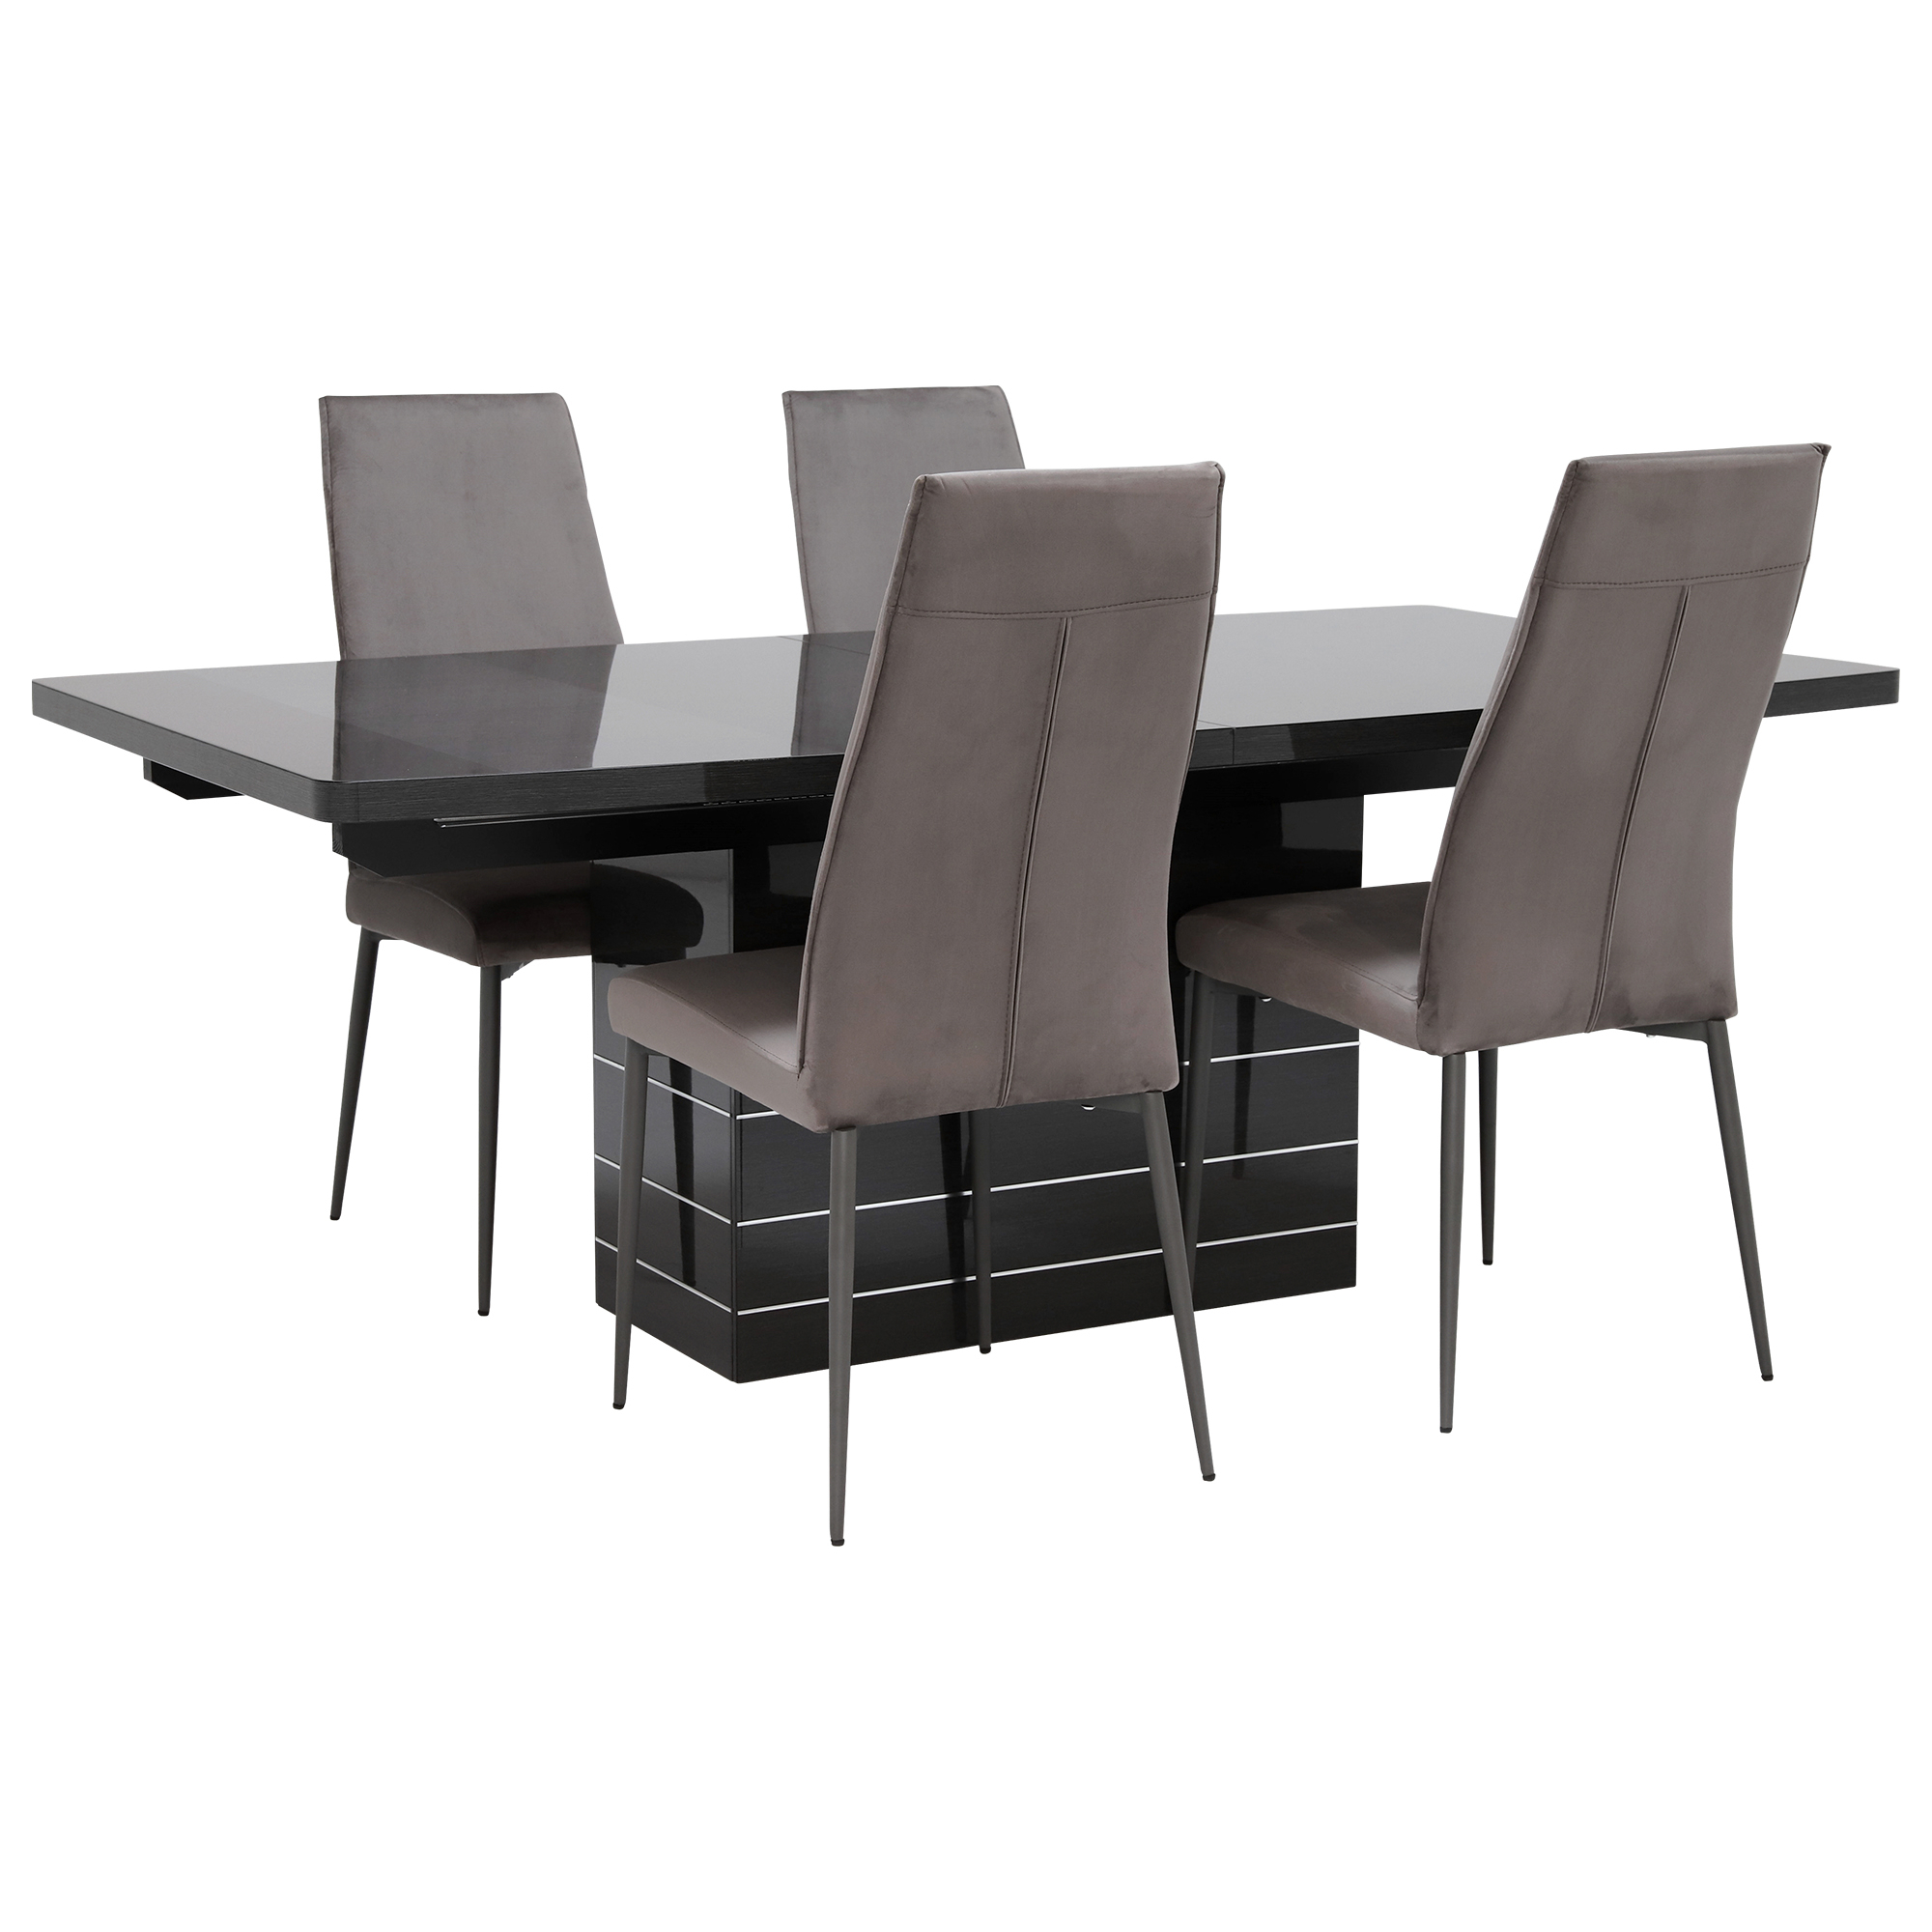 Versilia Extending Dining Table & 4 Chairs, Grey – Barker & Stonehouse Inside Most Current Martino Dining Tables (View 13 of 25)